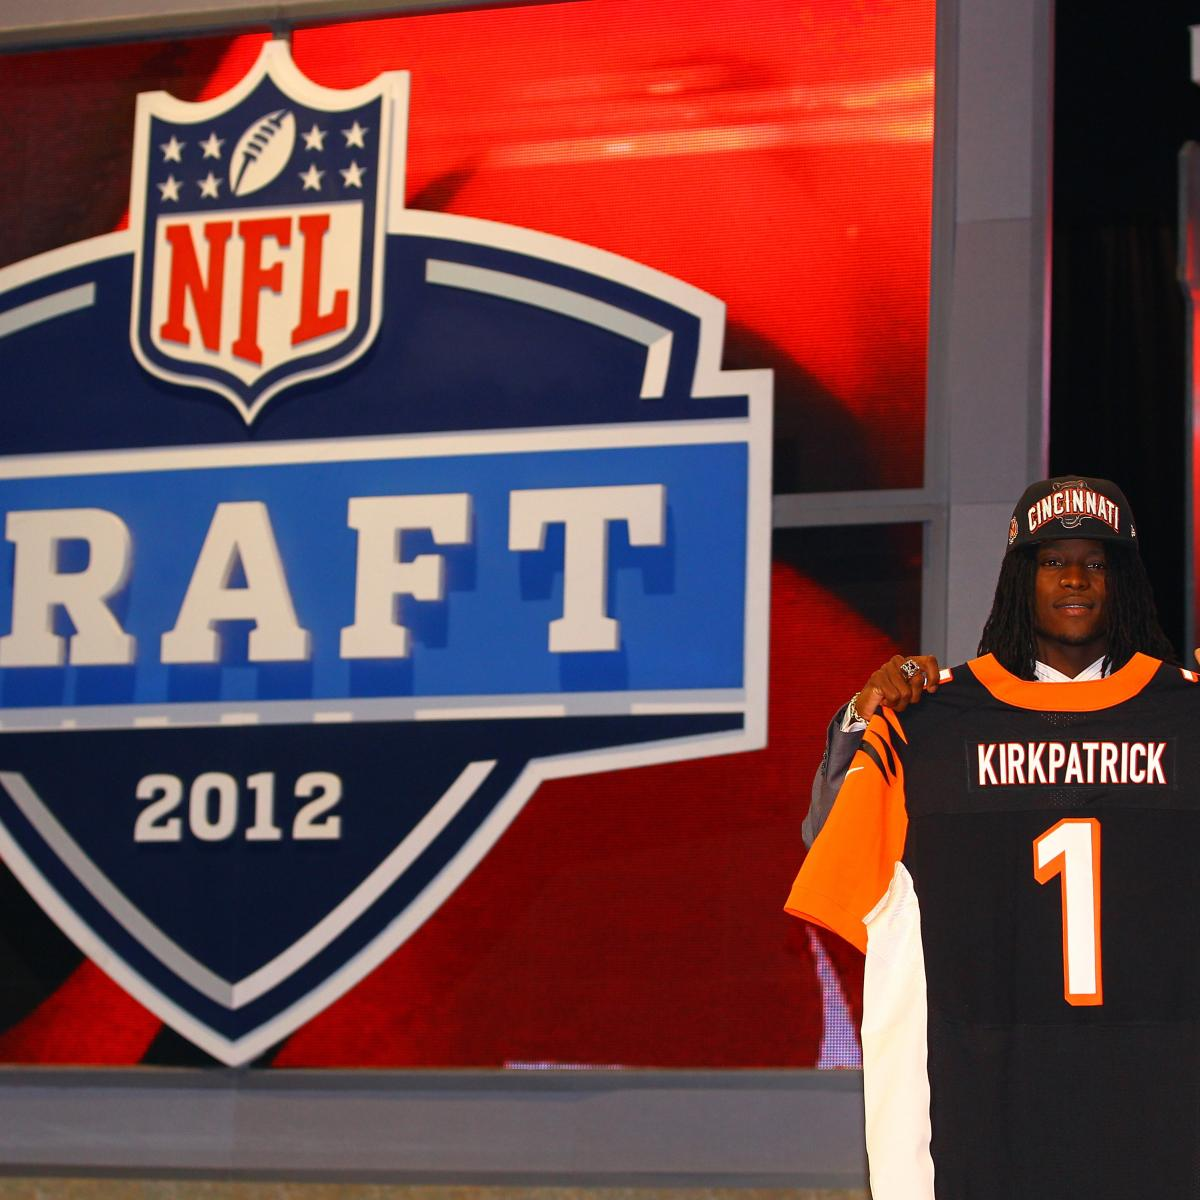 Latest News Updates: Cincinnati Bengals 2013 Draft Updates: Latest News, Trade